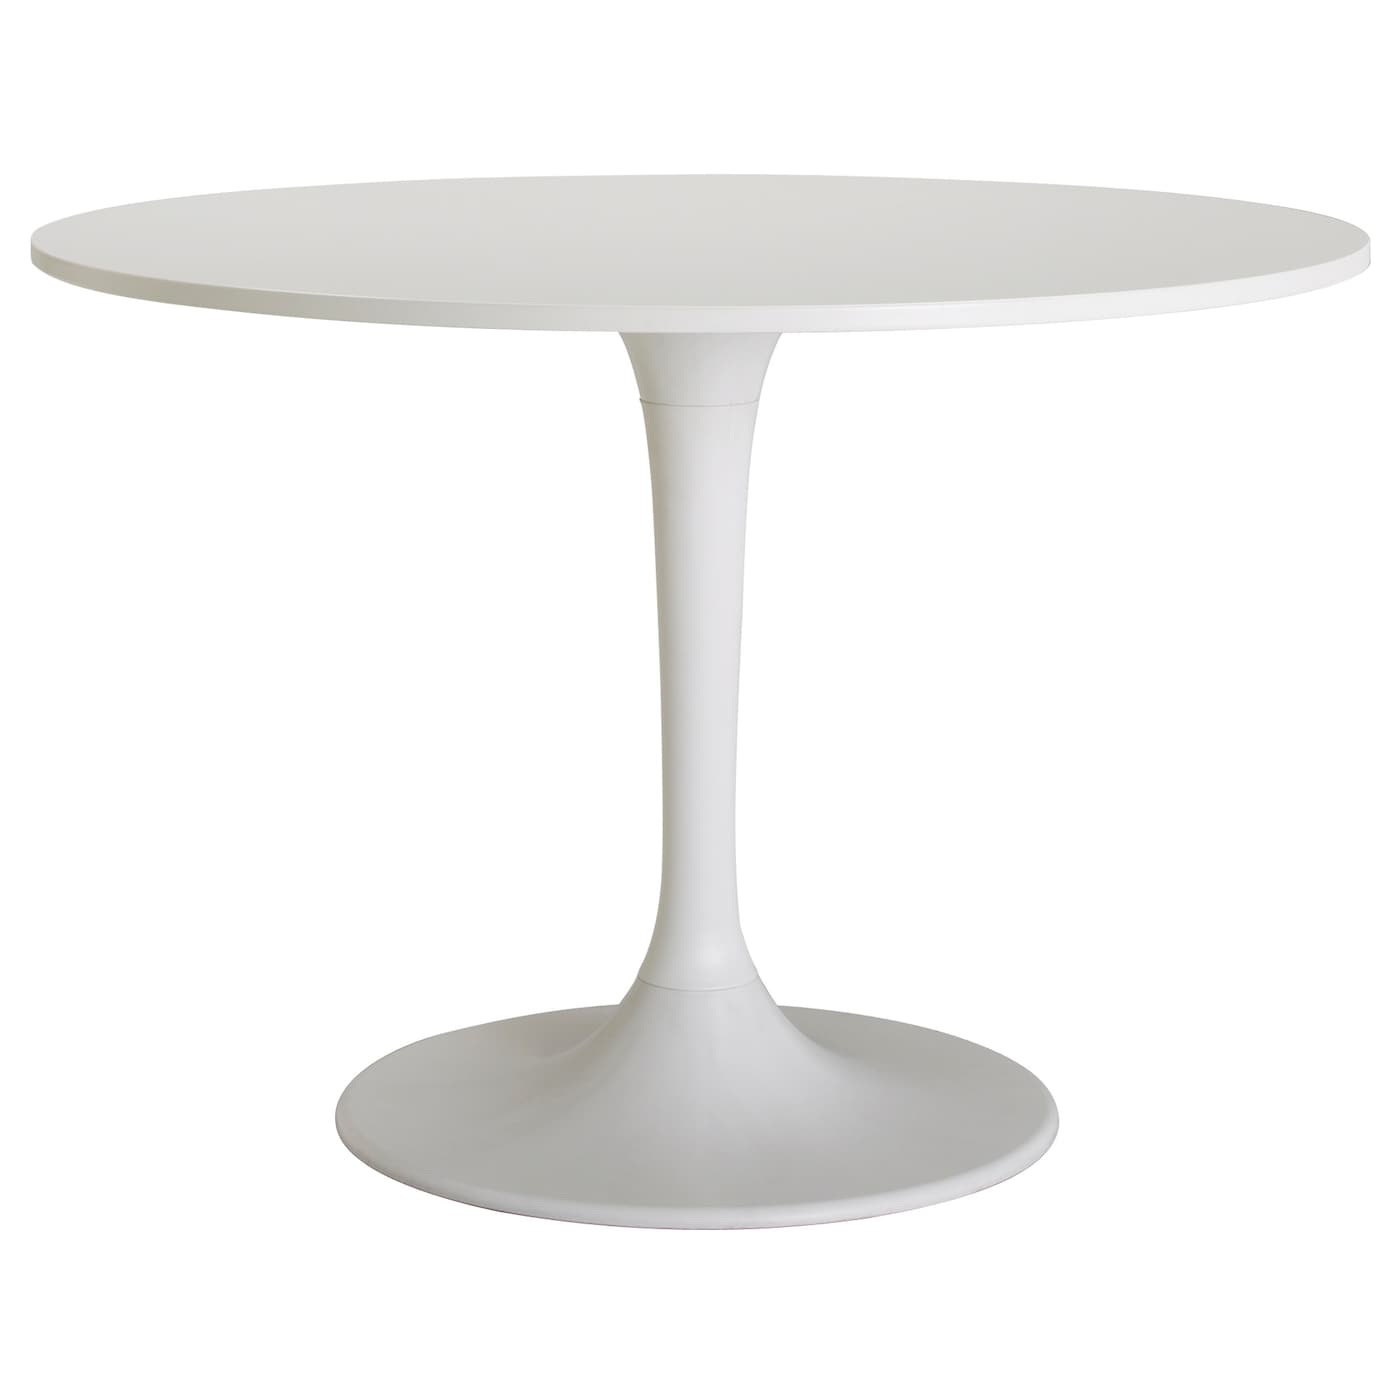 Dining tables kitchen tables dining room tables ikea for Table circle